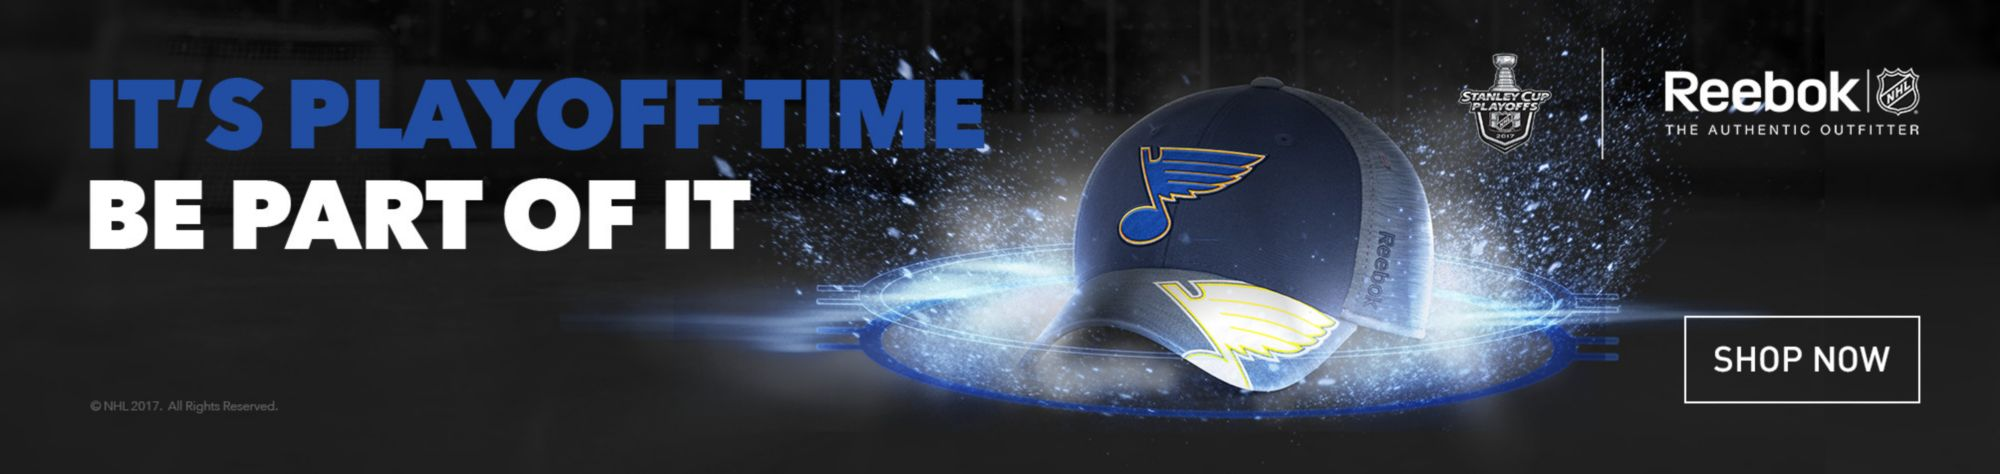 NHL Reebok Playoffs - St. Louis Blues